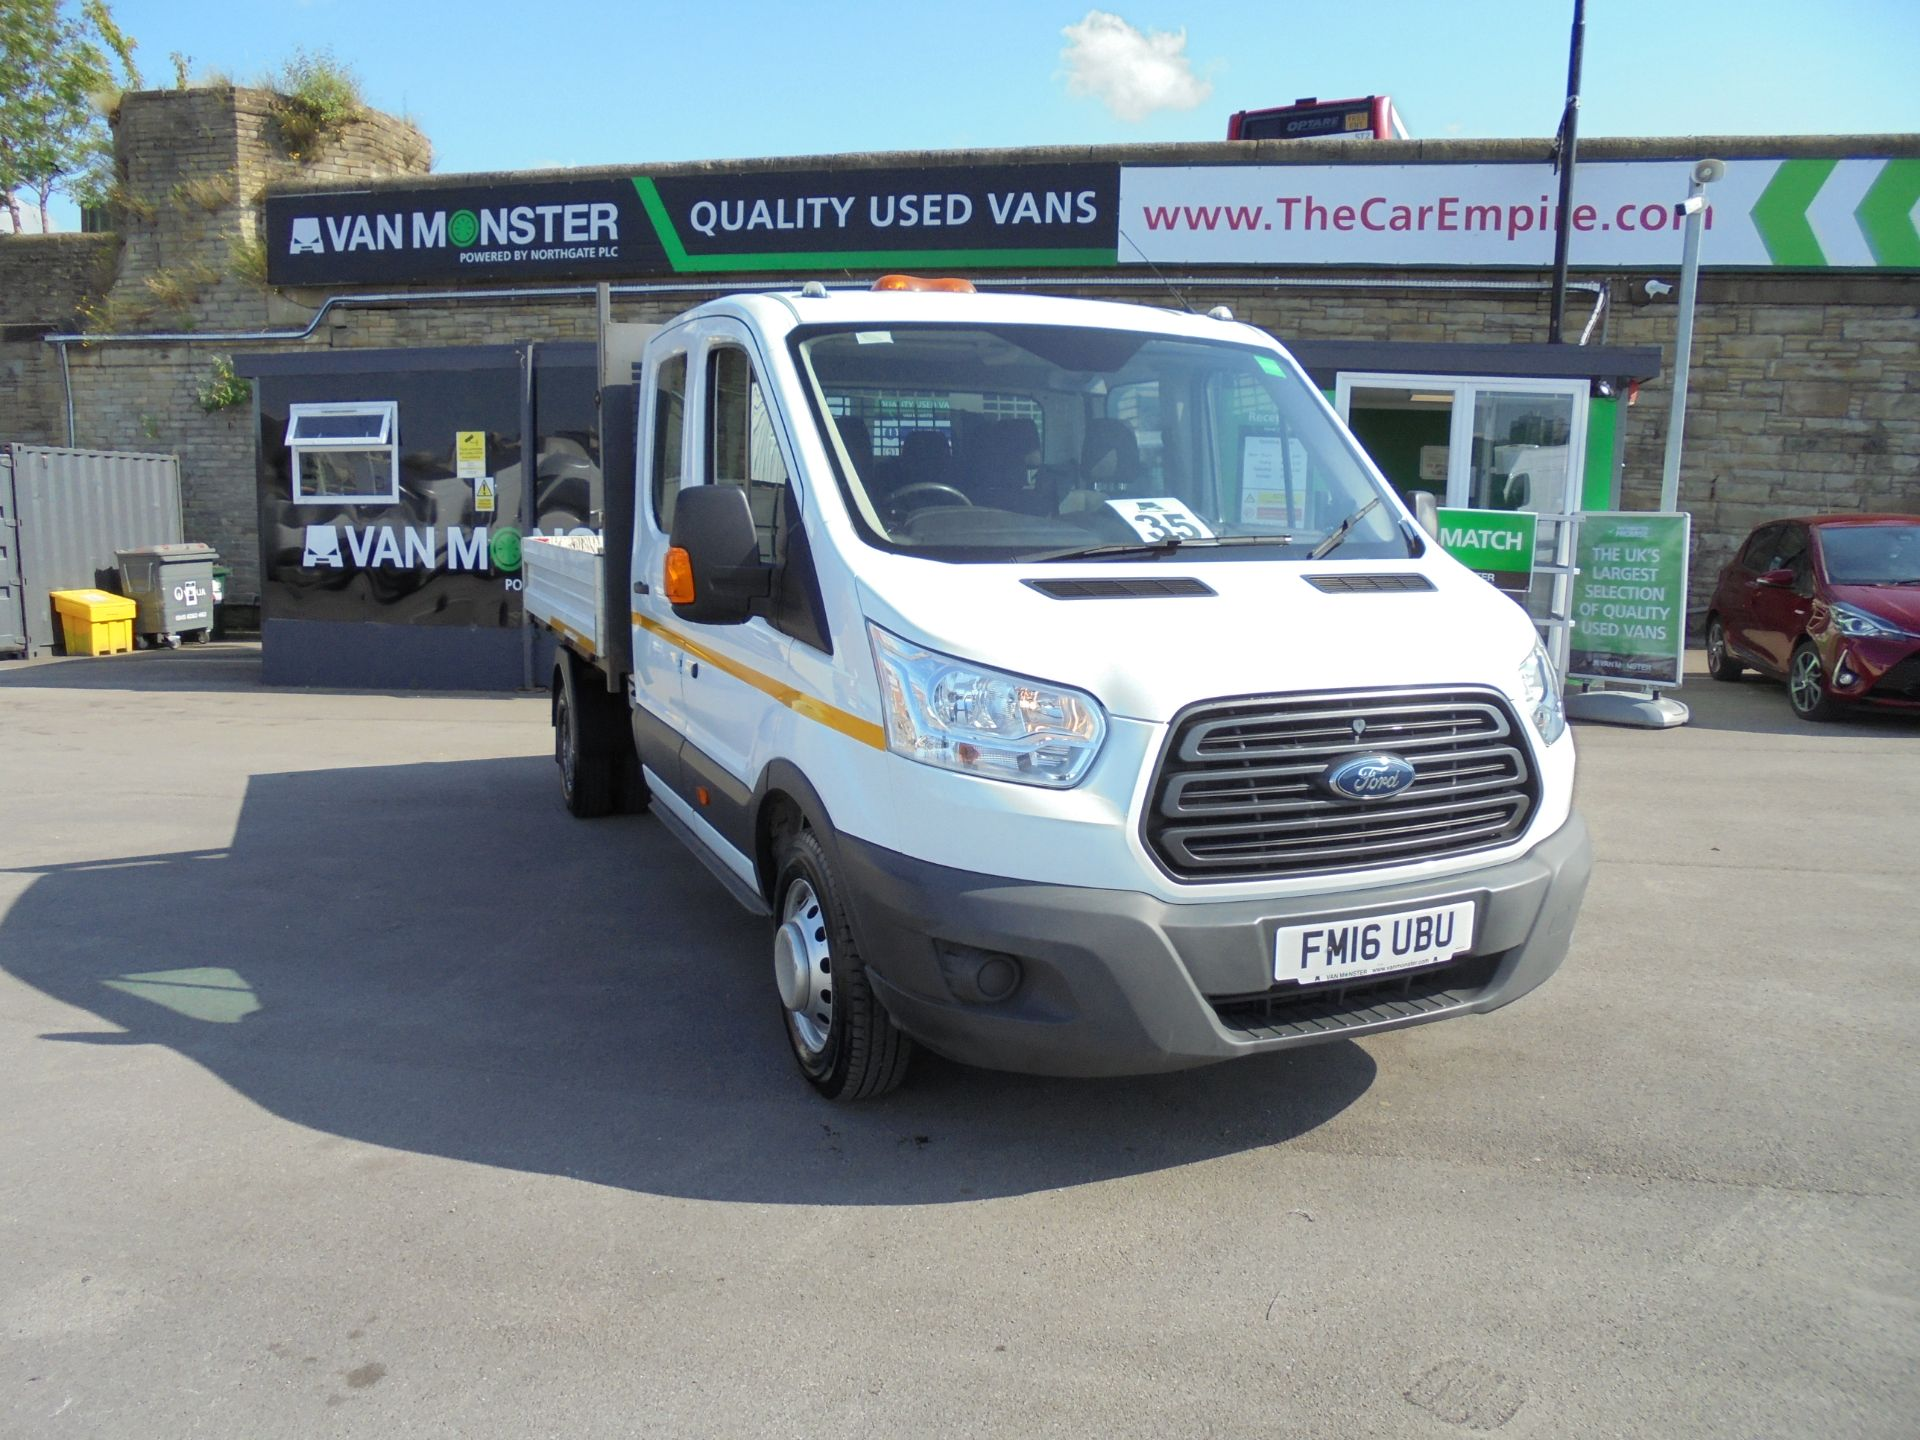 2016 Ford Transit 2.2 Tdci 125Ps Double Cab TIPPER (FM16UBU)